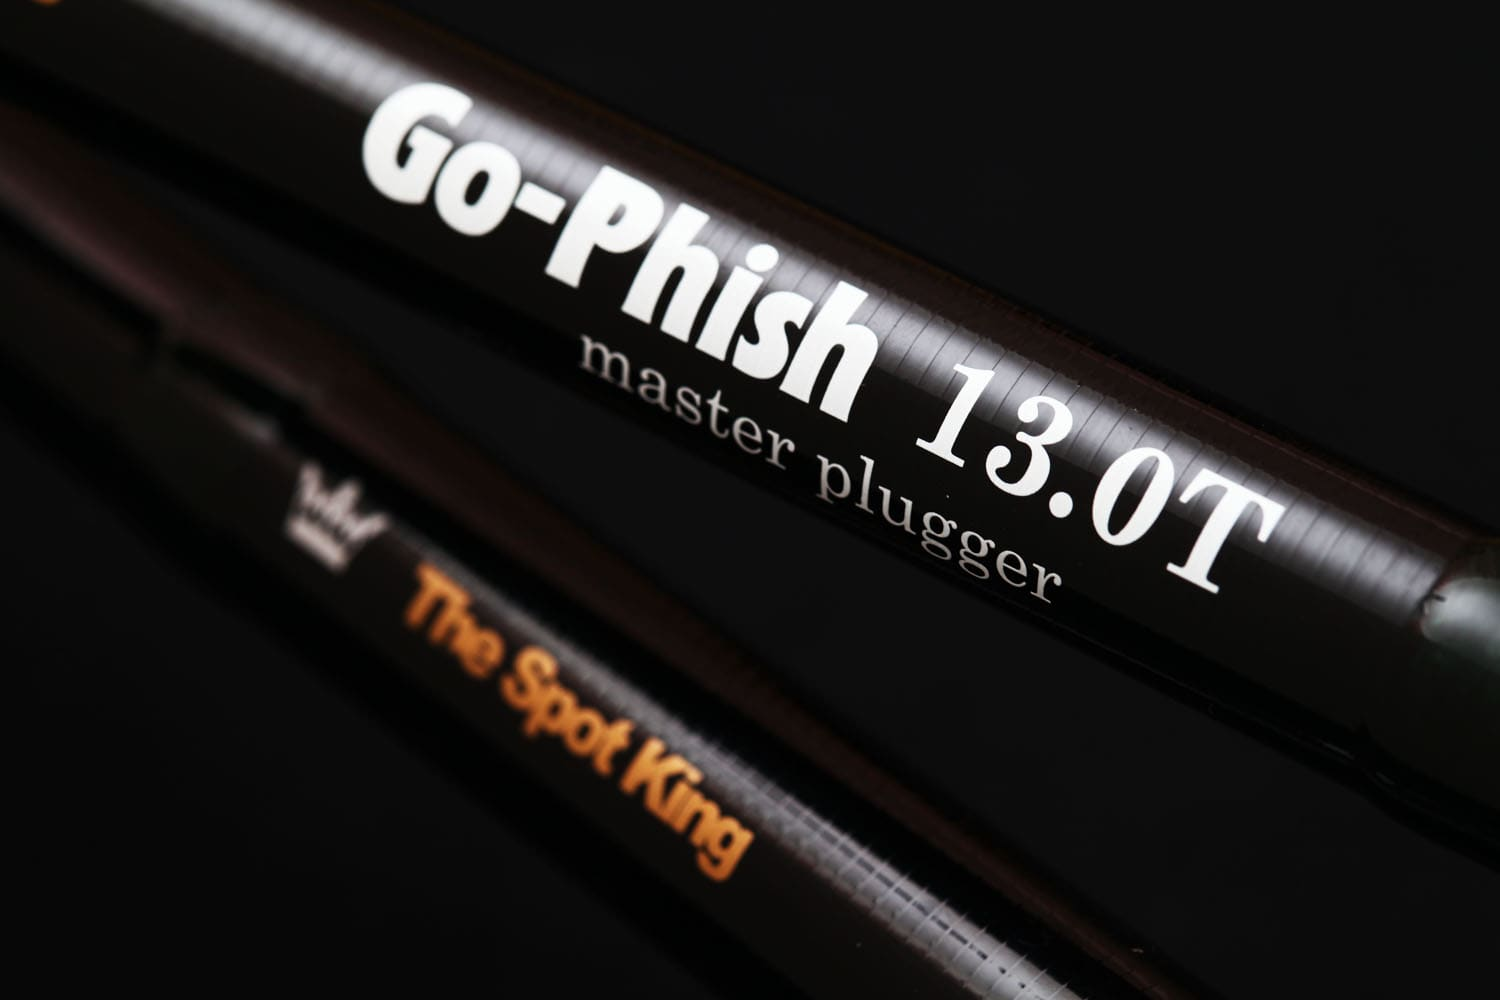 1rod004-master plugger13